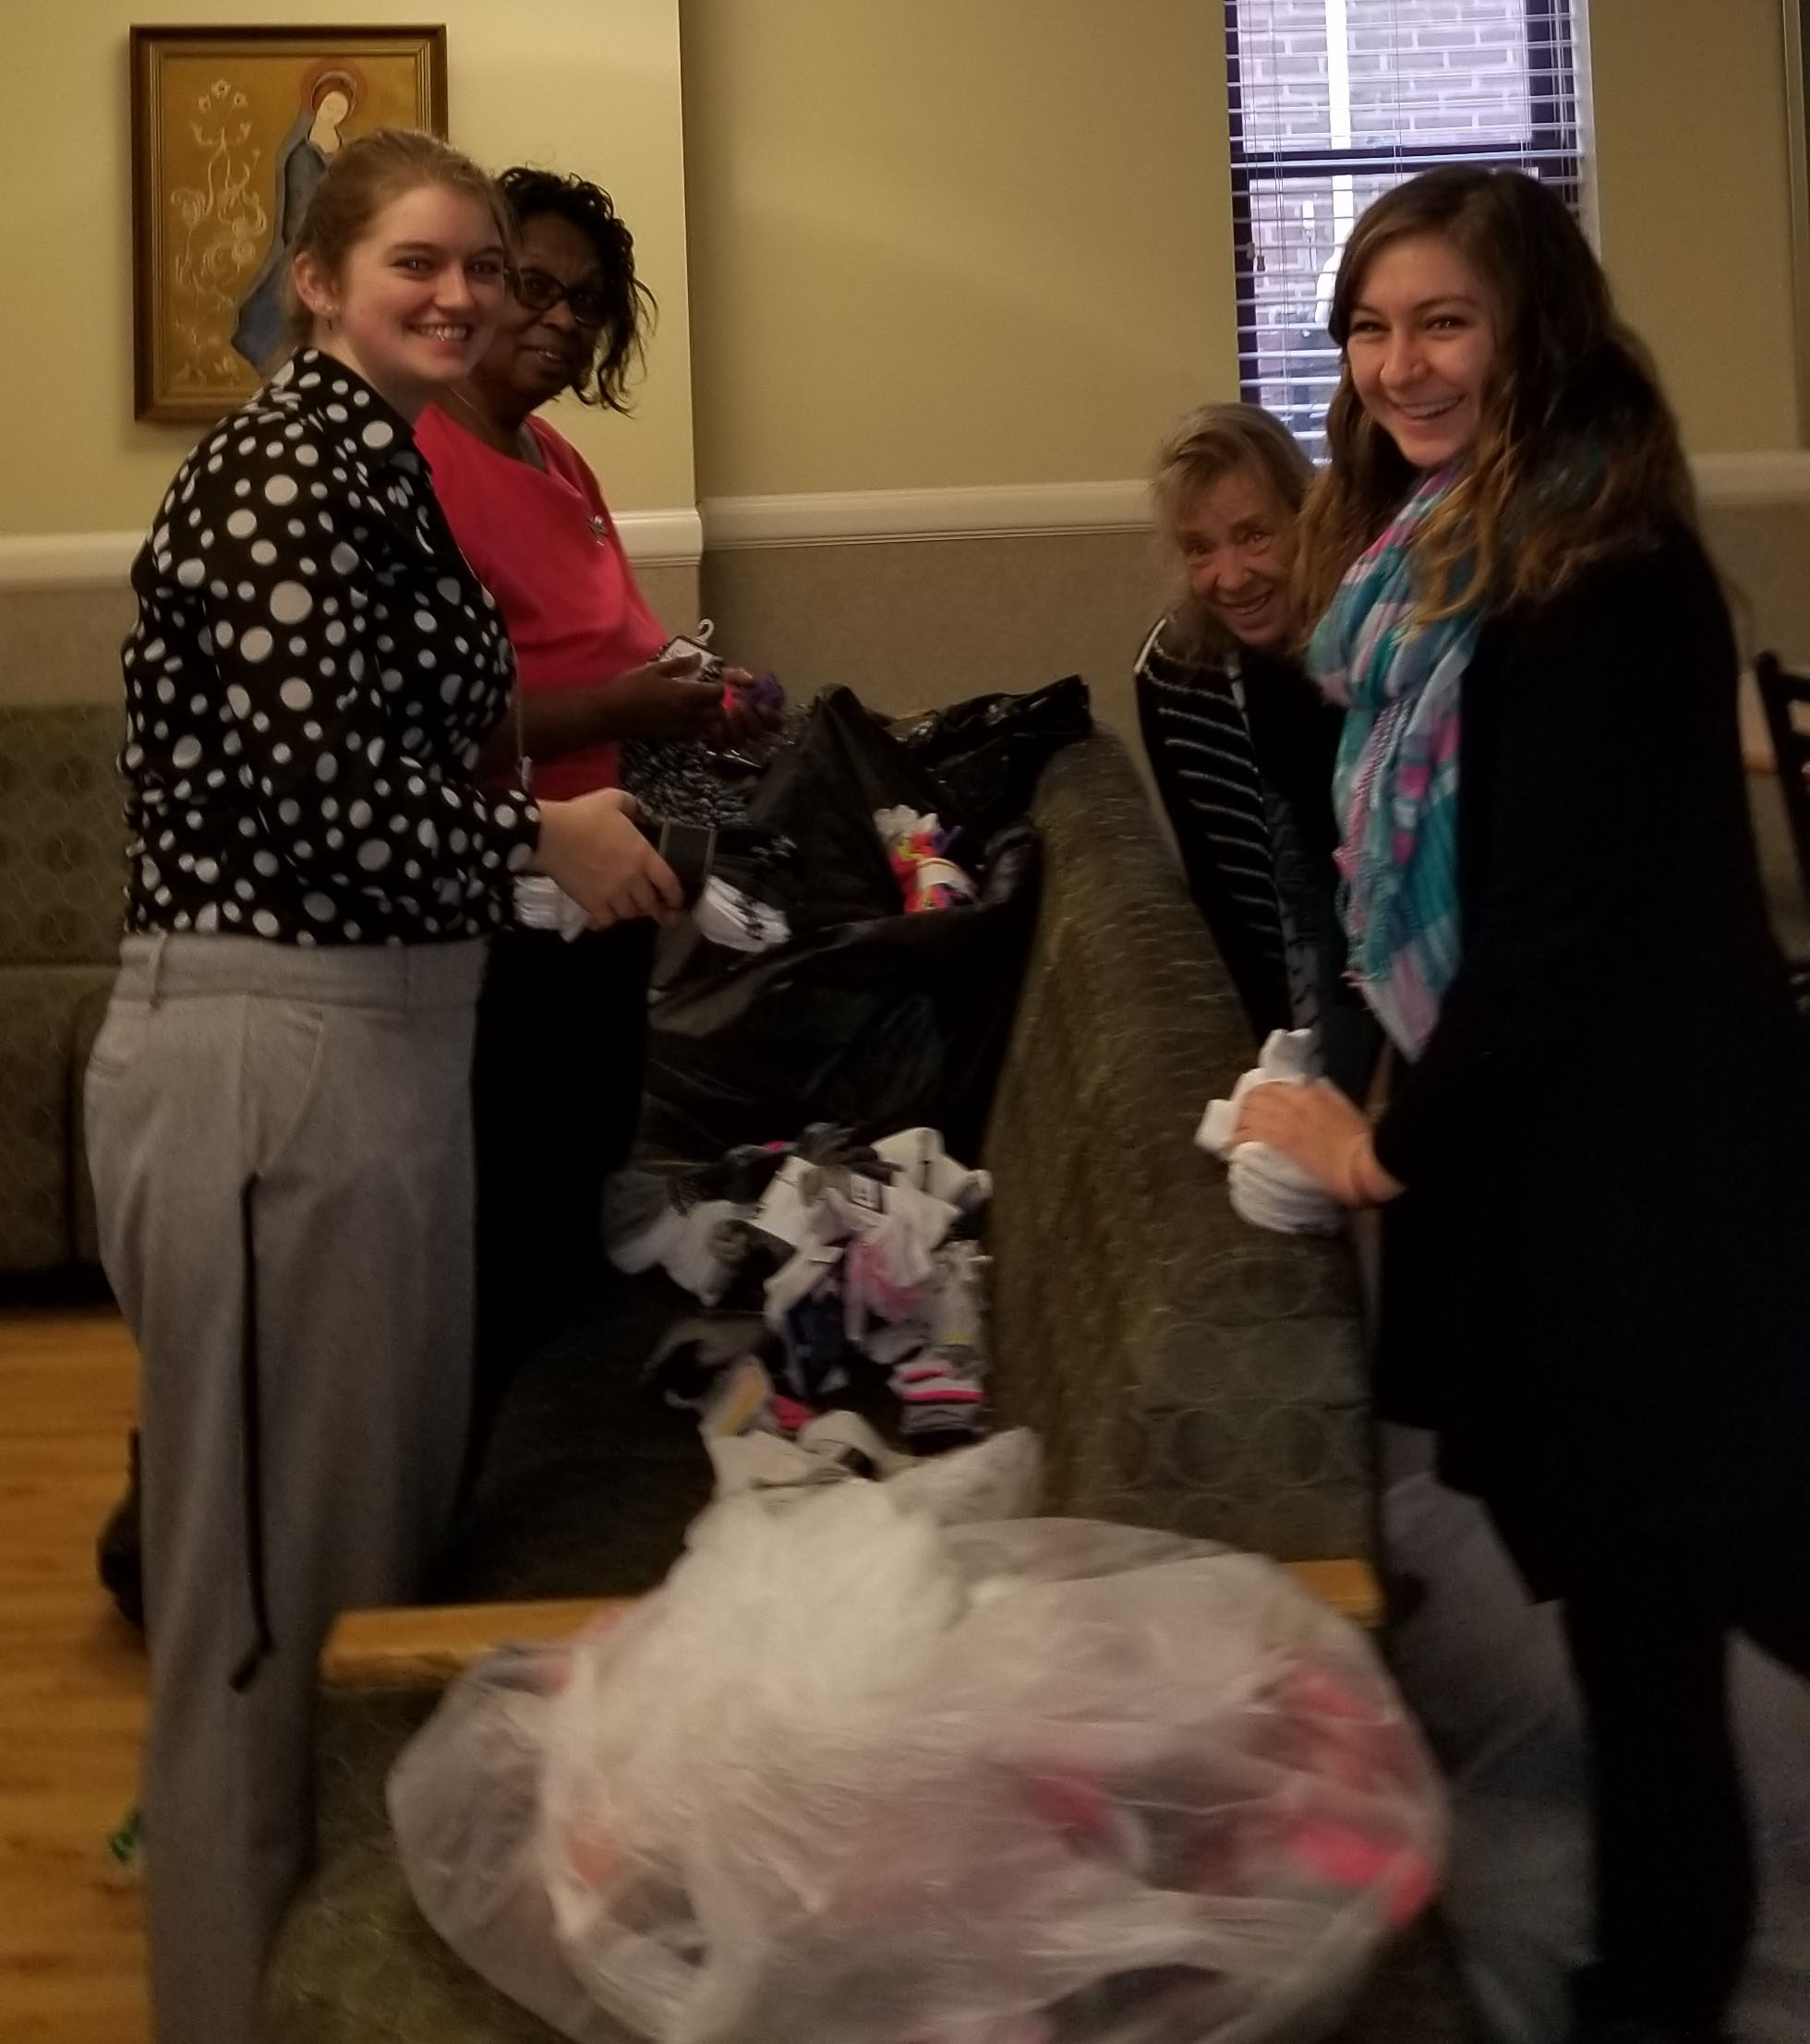 Jordan McCutcheon led her middle school in a sock donation drive